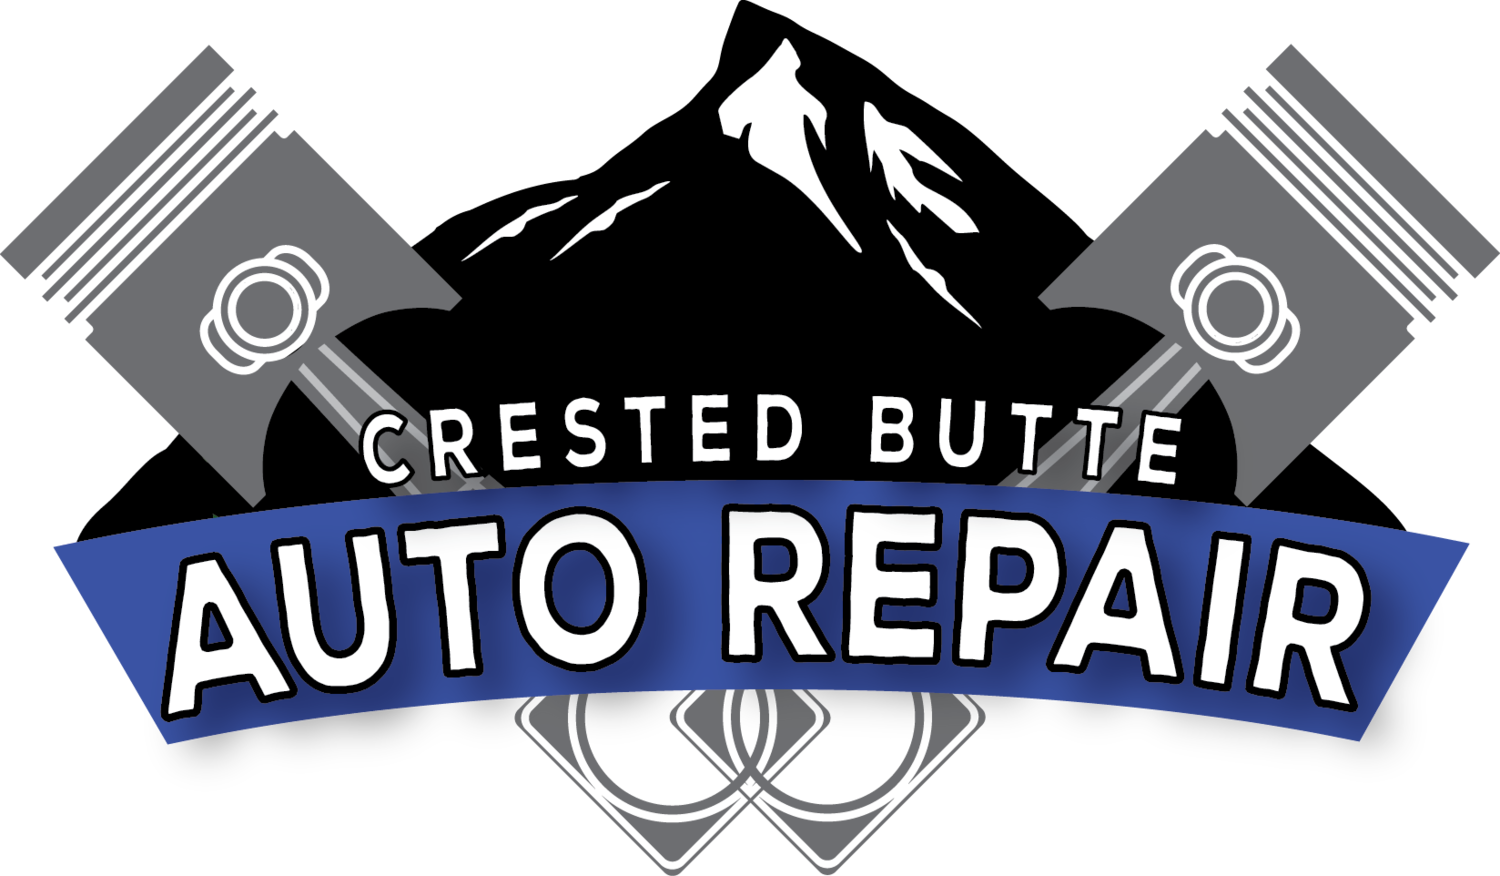 Crested Butte Auto